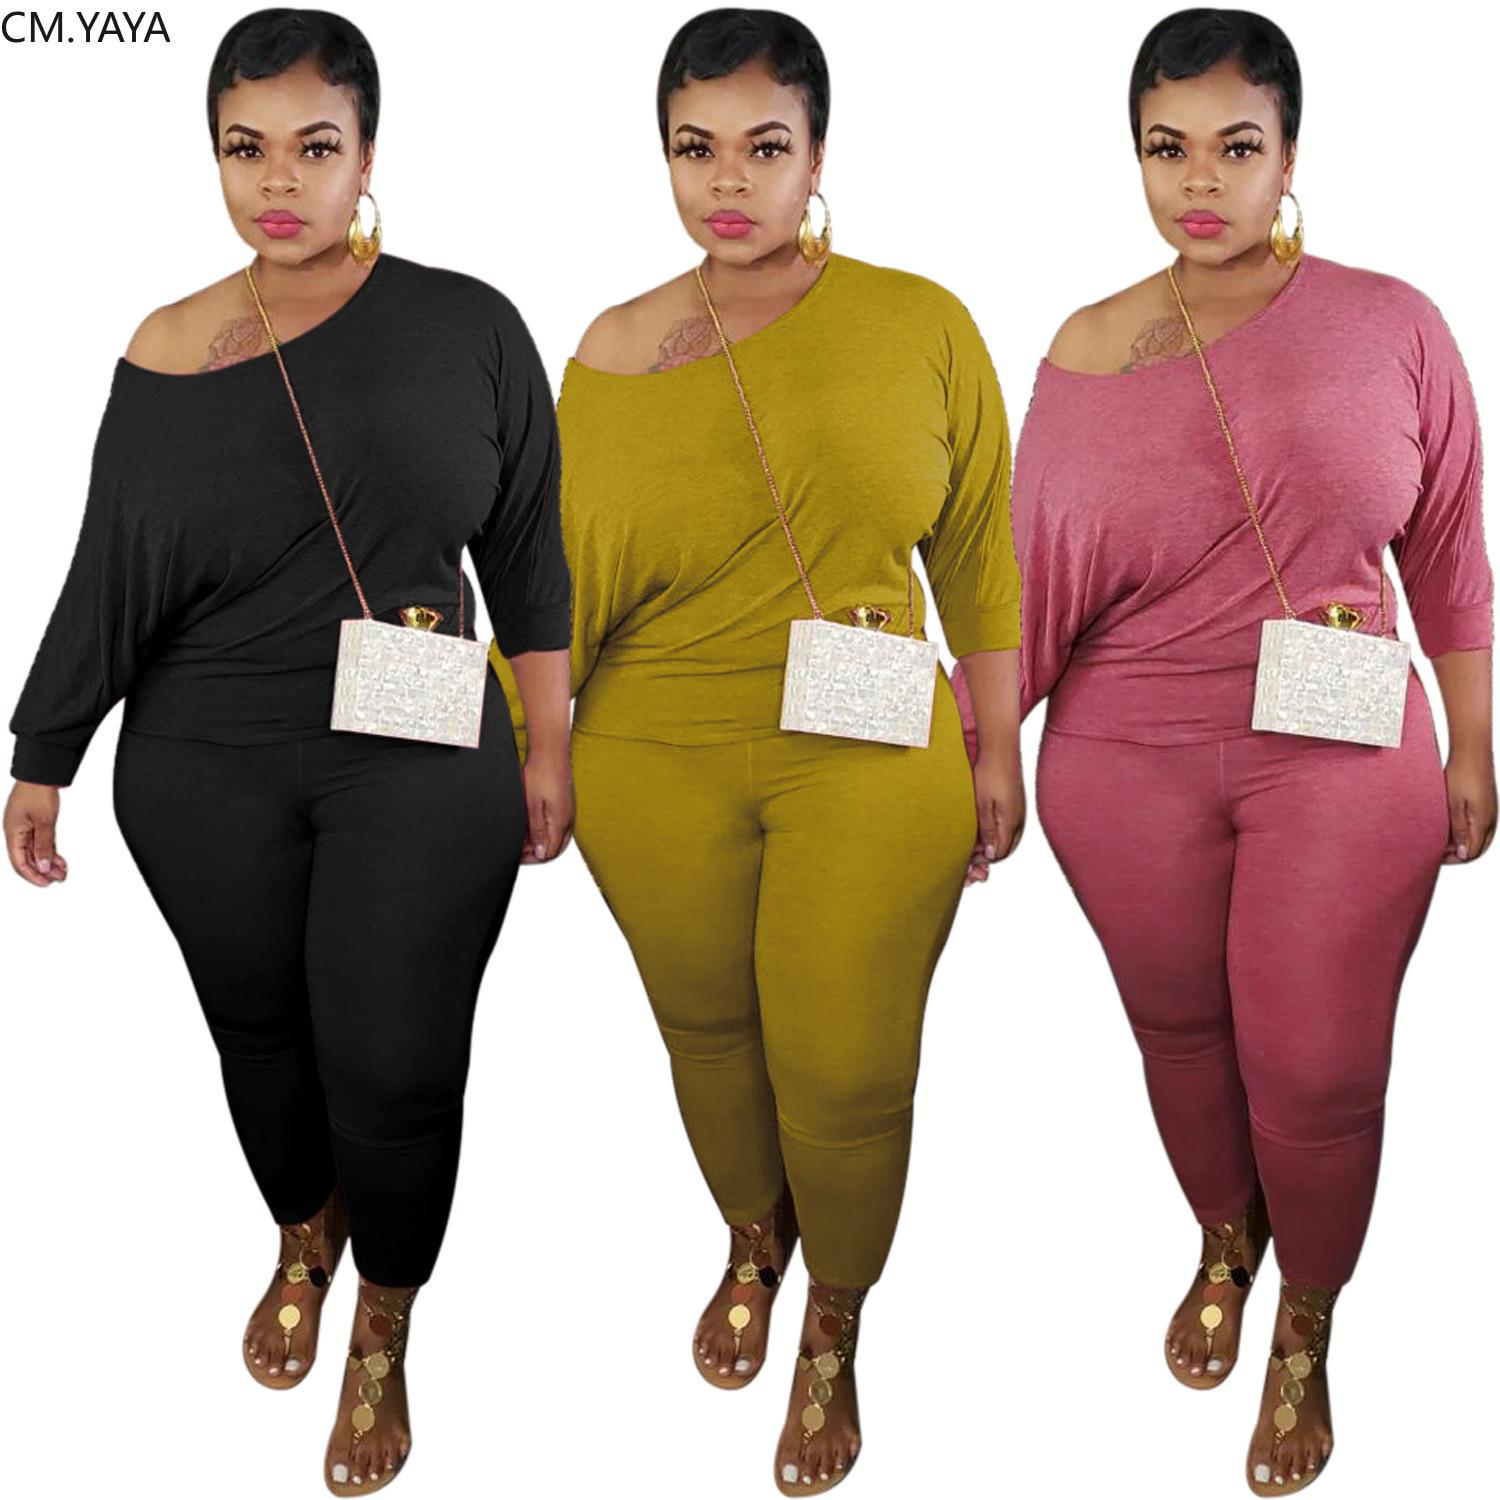 CM.YAYA Plus Size XL-5XL Women Set Two Pieces Set Tracksuit Batwing SLeeve Tee Tops Jogger Sweatpant Suit Outfit Matching Set